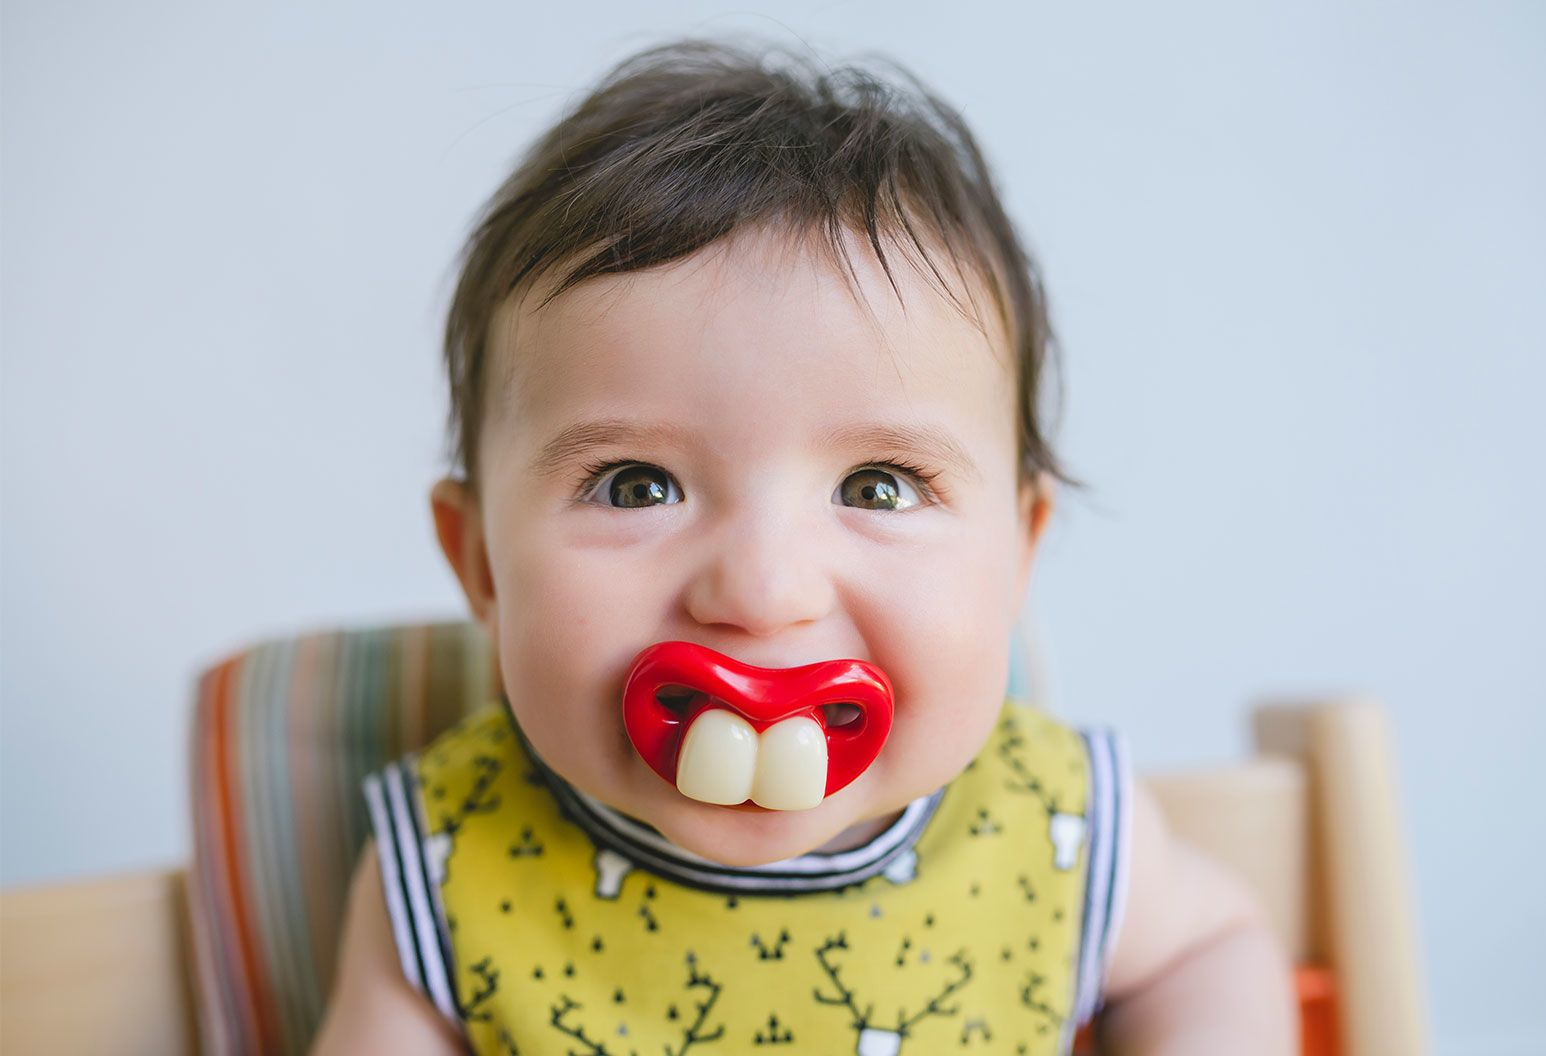 Baby sits in a highchair with a yellow sleeveless shirt on with a pacifier in their mouth. The pacifier is read and has two front teeth molded on to make it look like the baby is smiling to show their teeth.